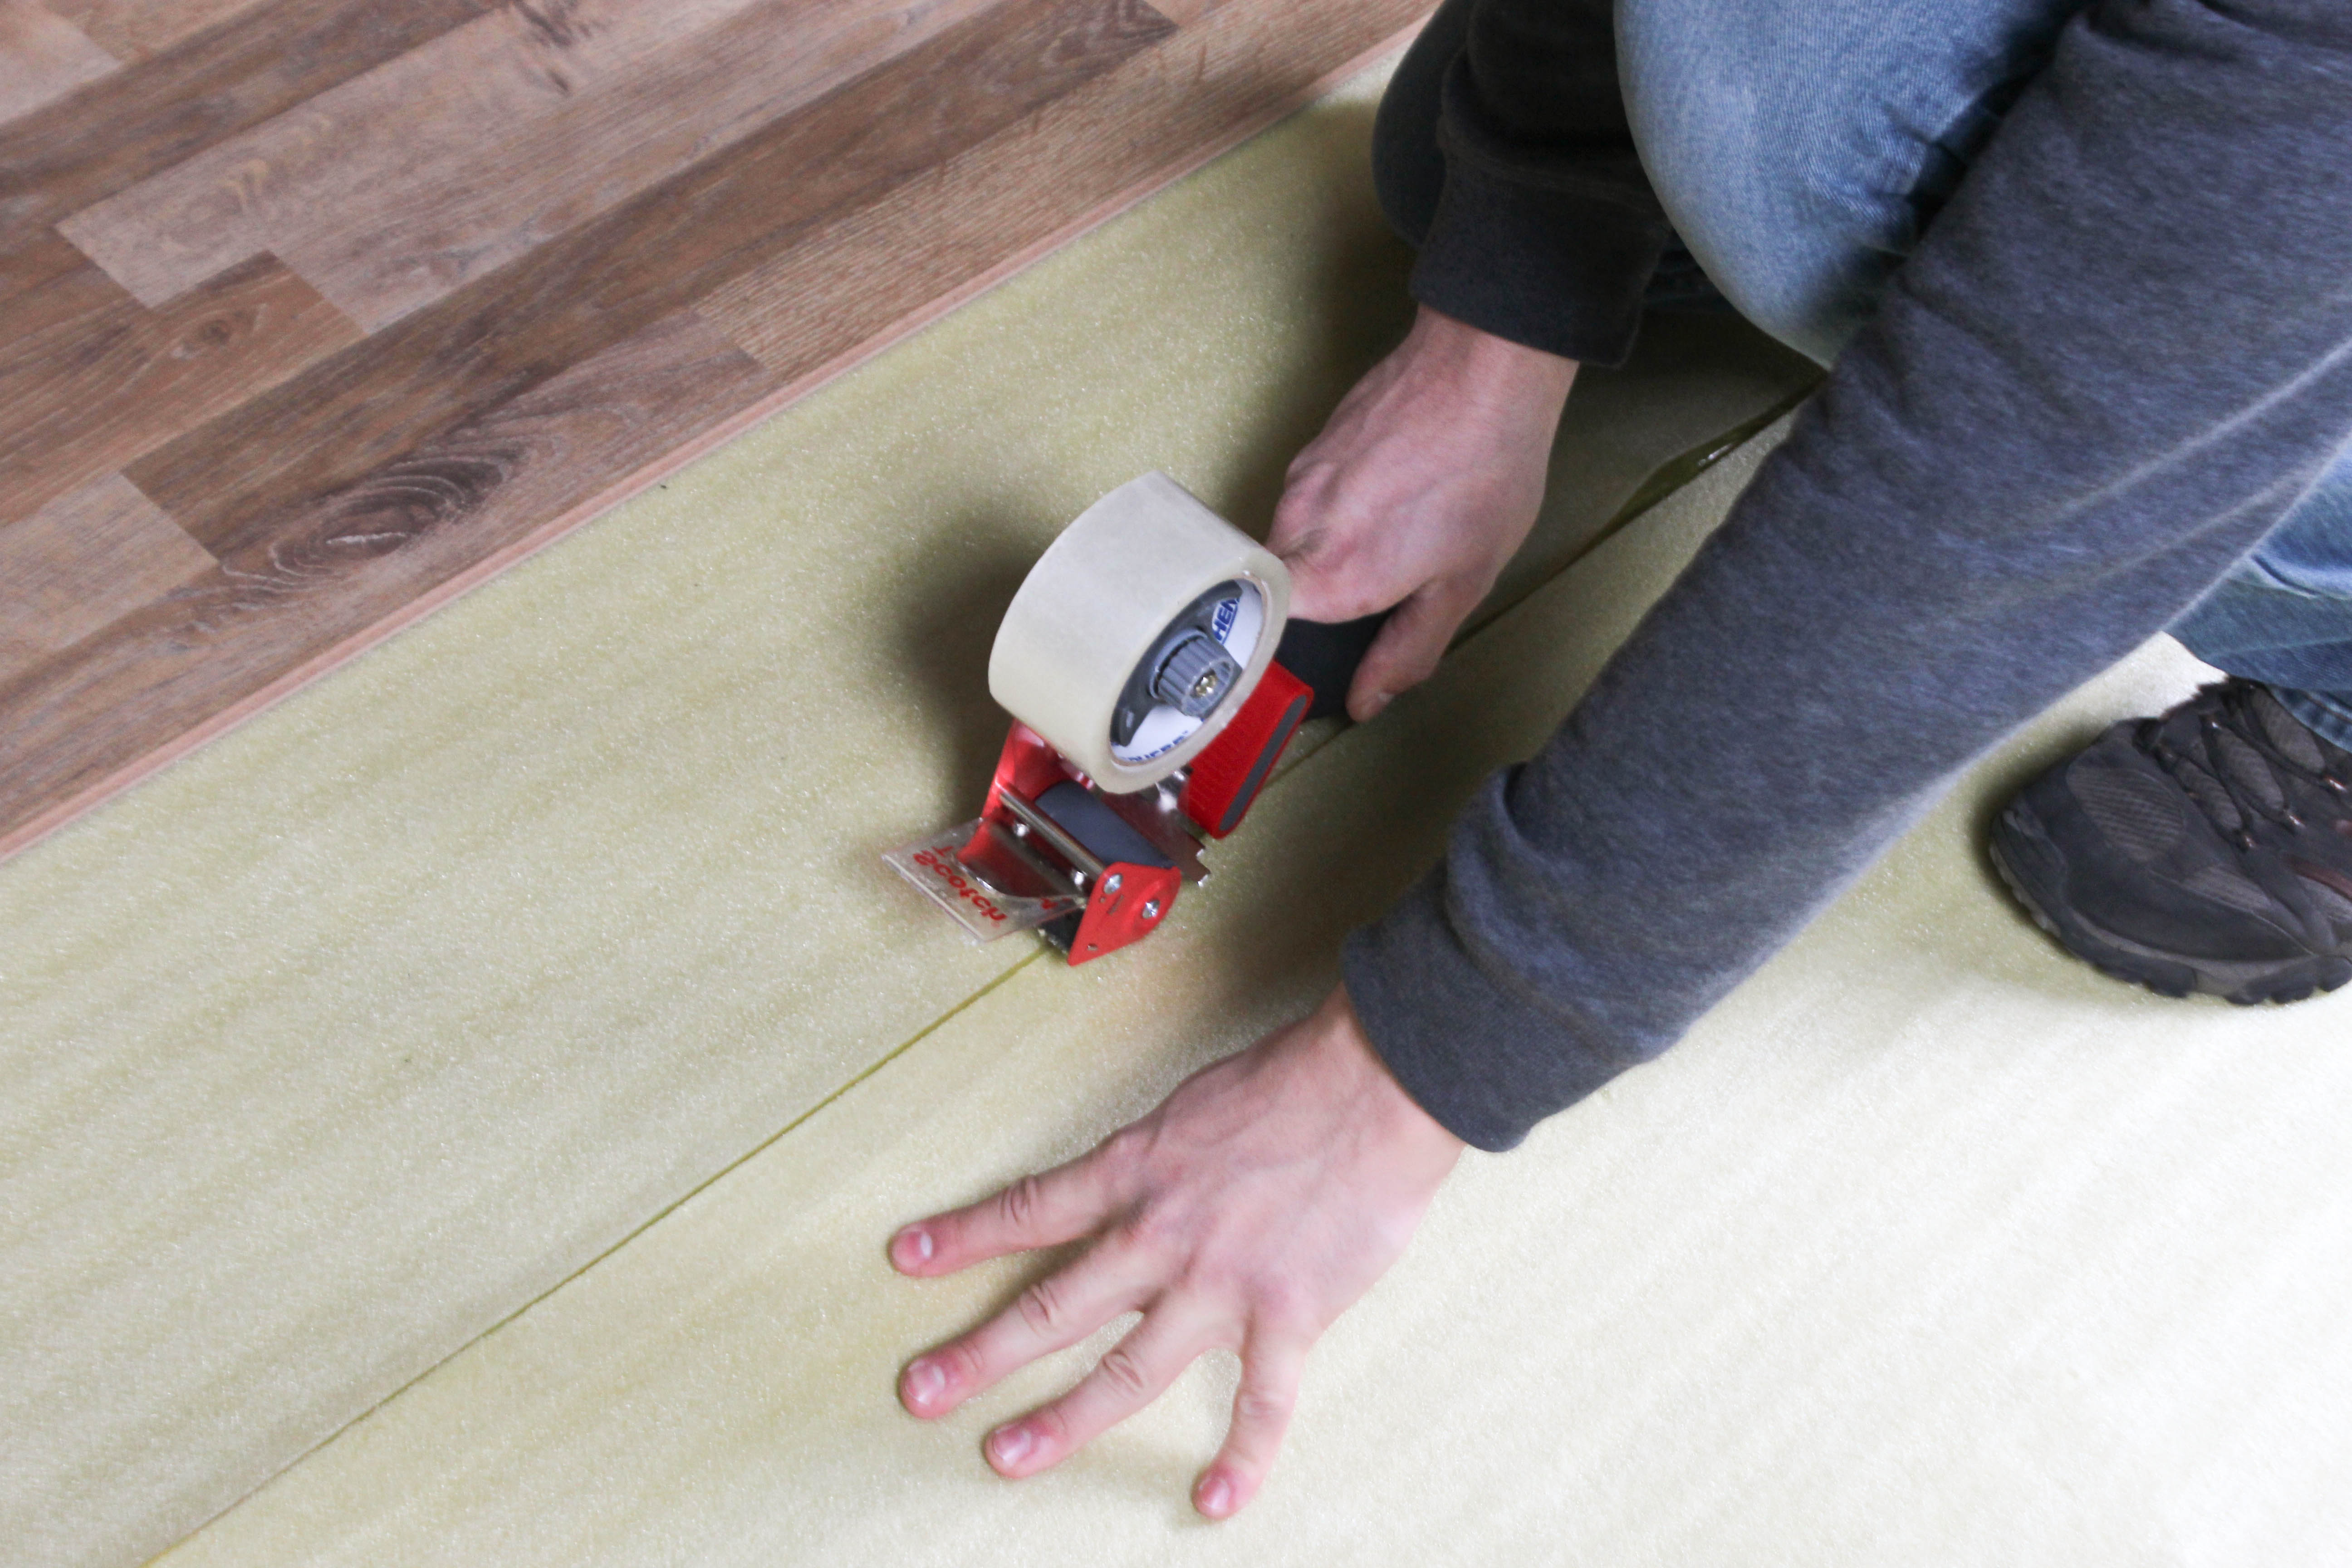 How To Install In Vapor Barrier Flooring Underlayment - What do i put under laminate flooring